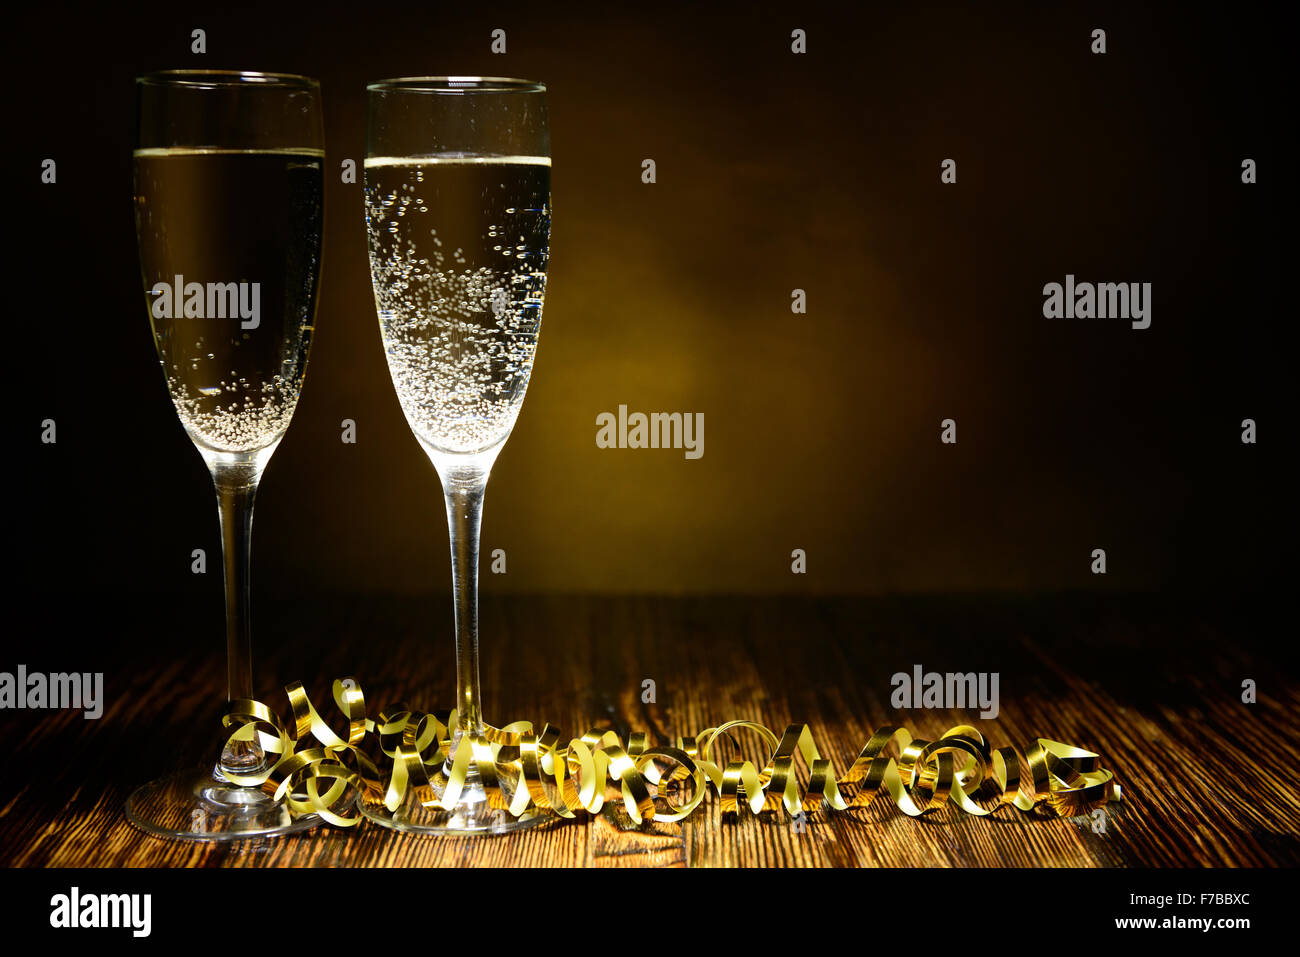 two glasses of champagne on a wooden background Stock Photo